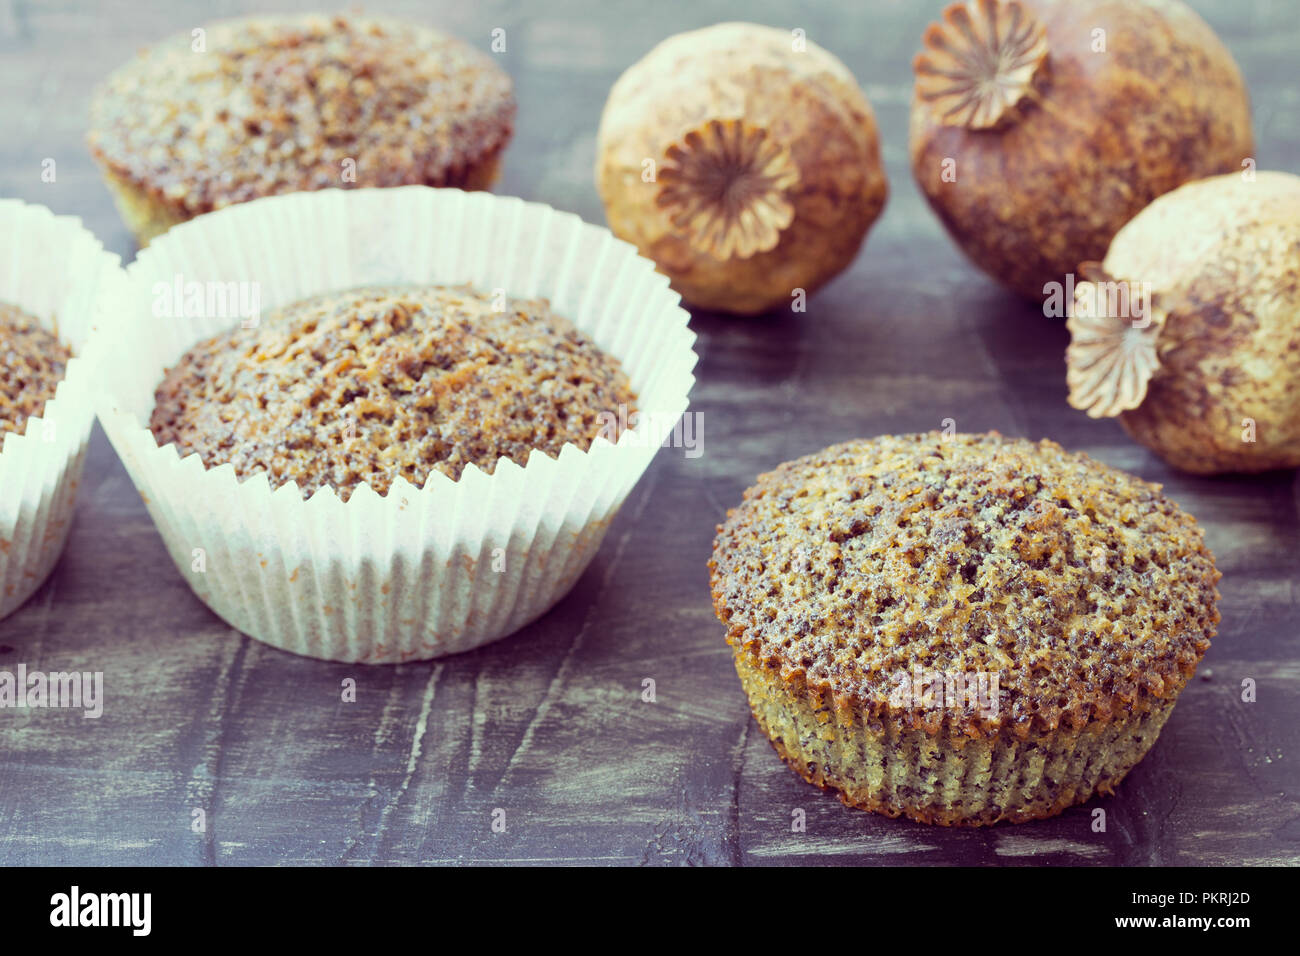 Fresh homemade muffins with poppy seeds - Stock Image